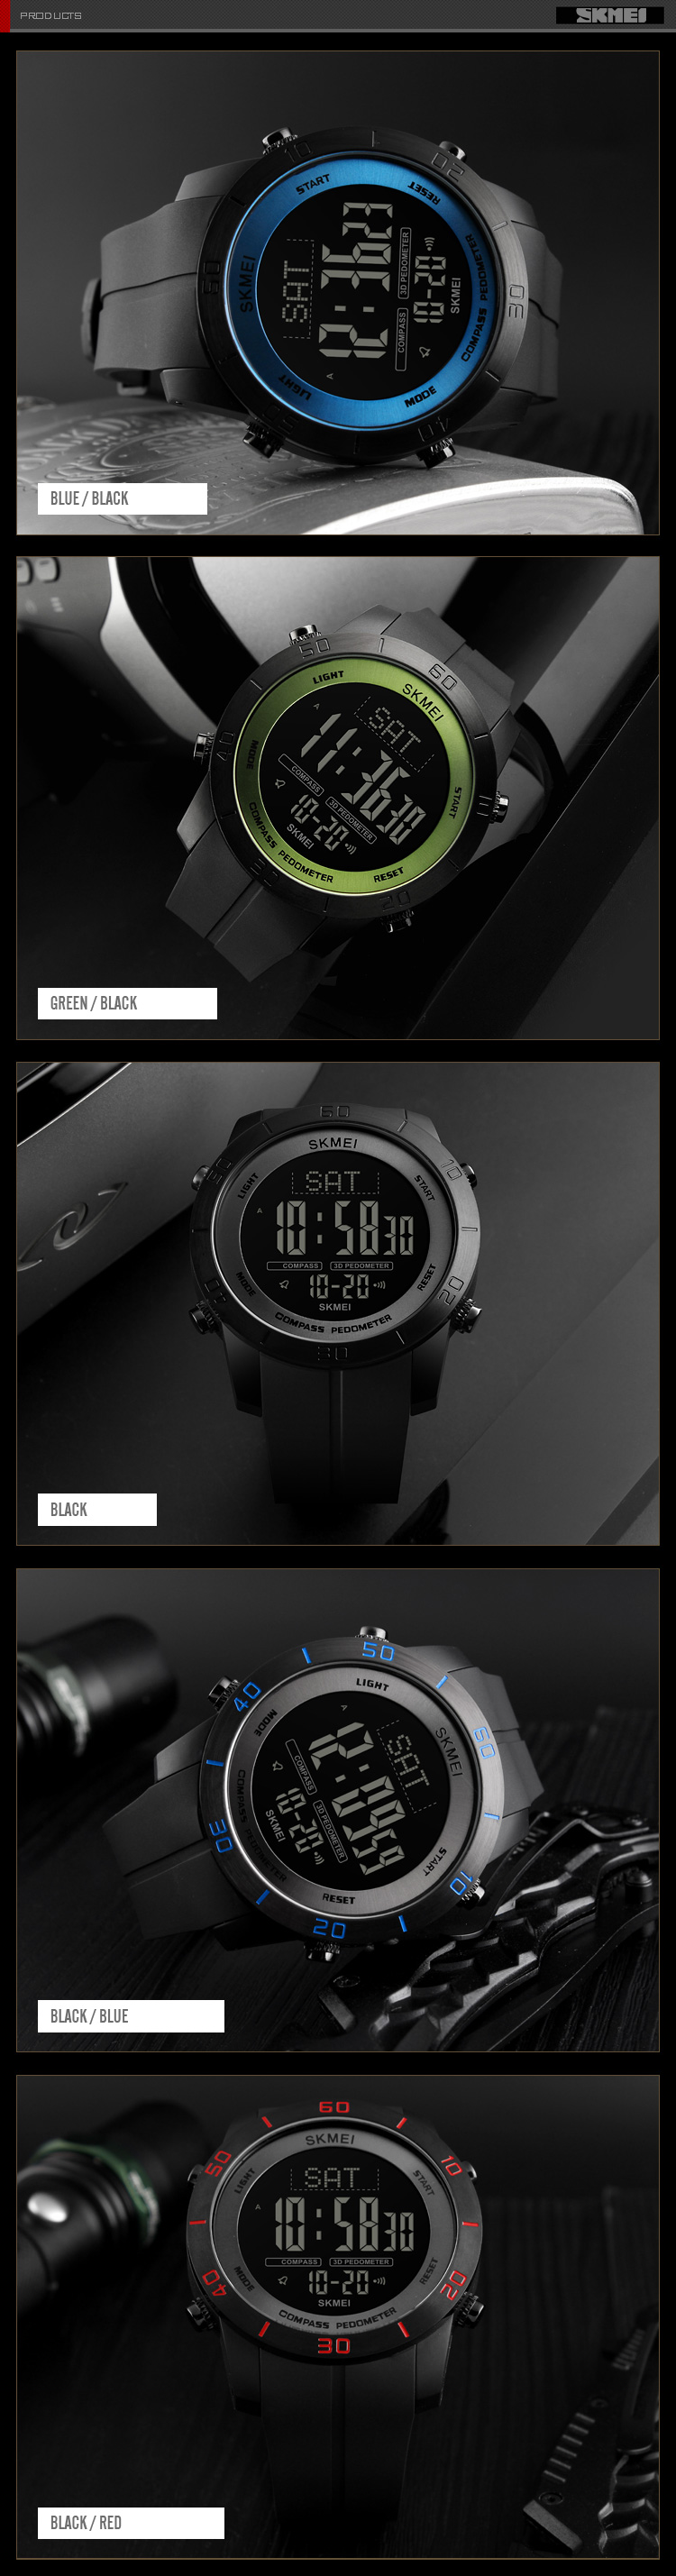 Watches Shop For Cheap Skmei Compass Chronograph Men Digital Sport Watch Altimeter Pressure Thermomet Weather Pedometer Calories Relogio Masculino Digital Watches